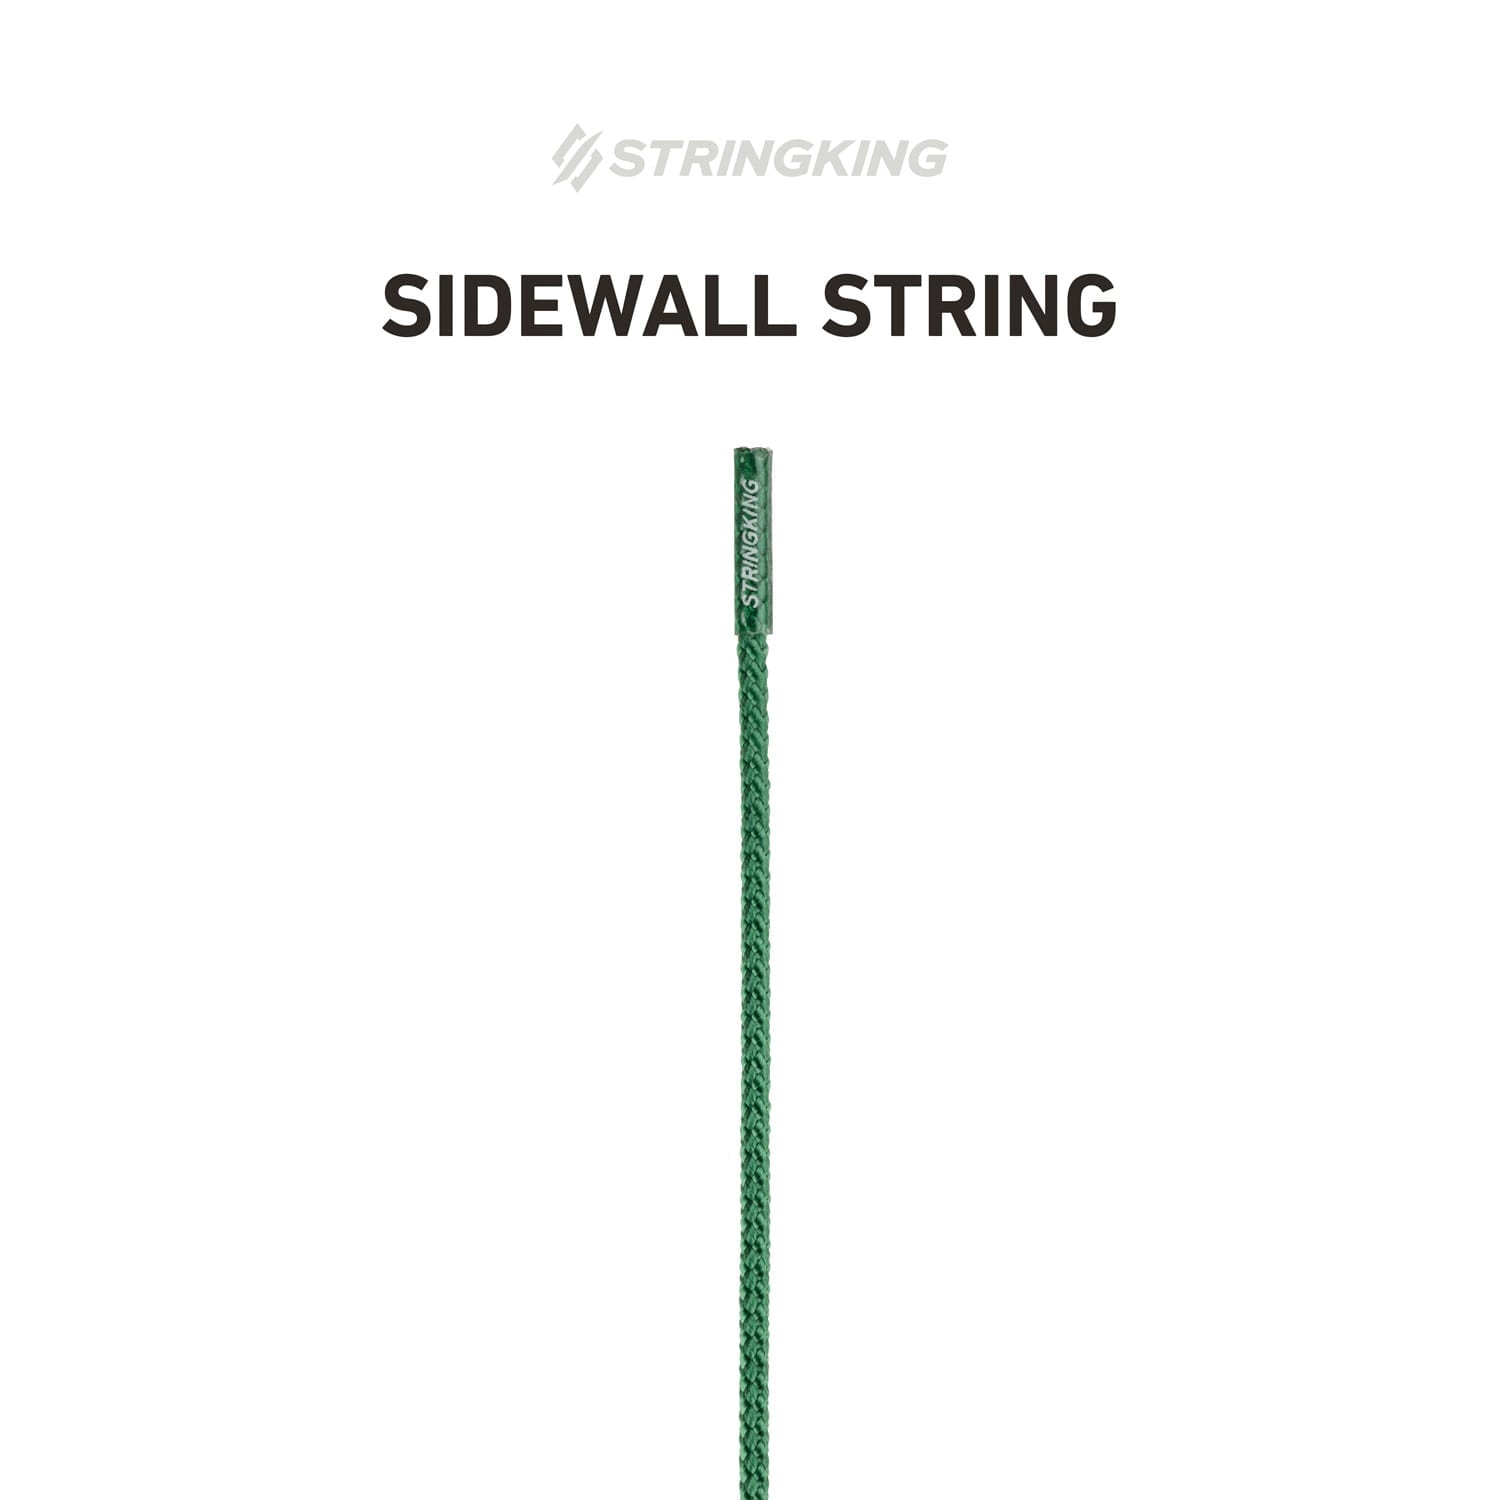 sidewall-string-specialty-retailers-forest.jpg